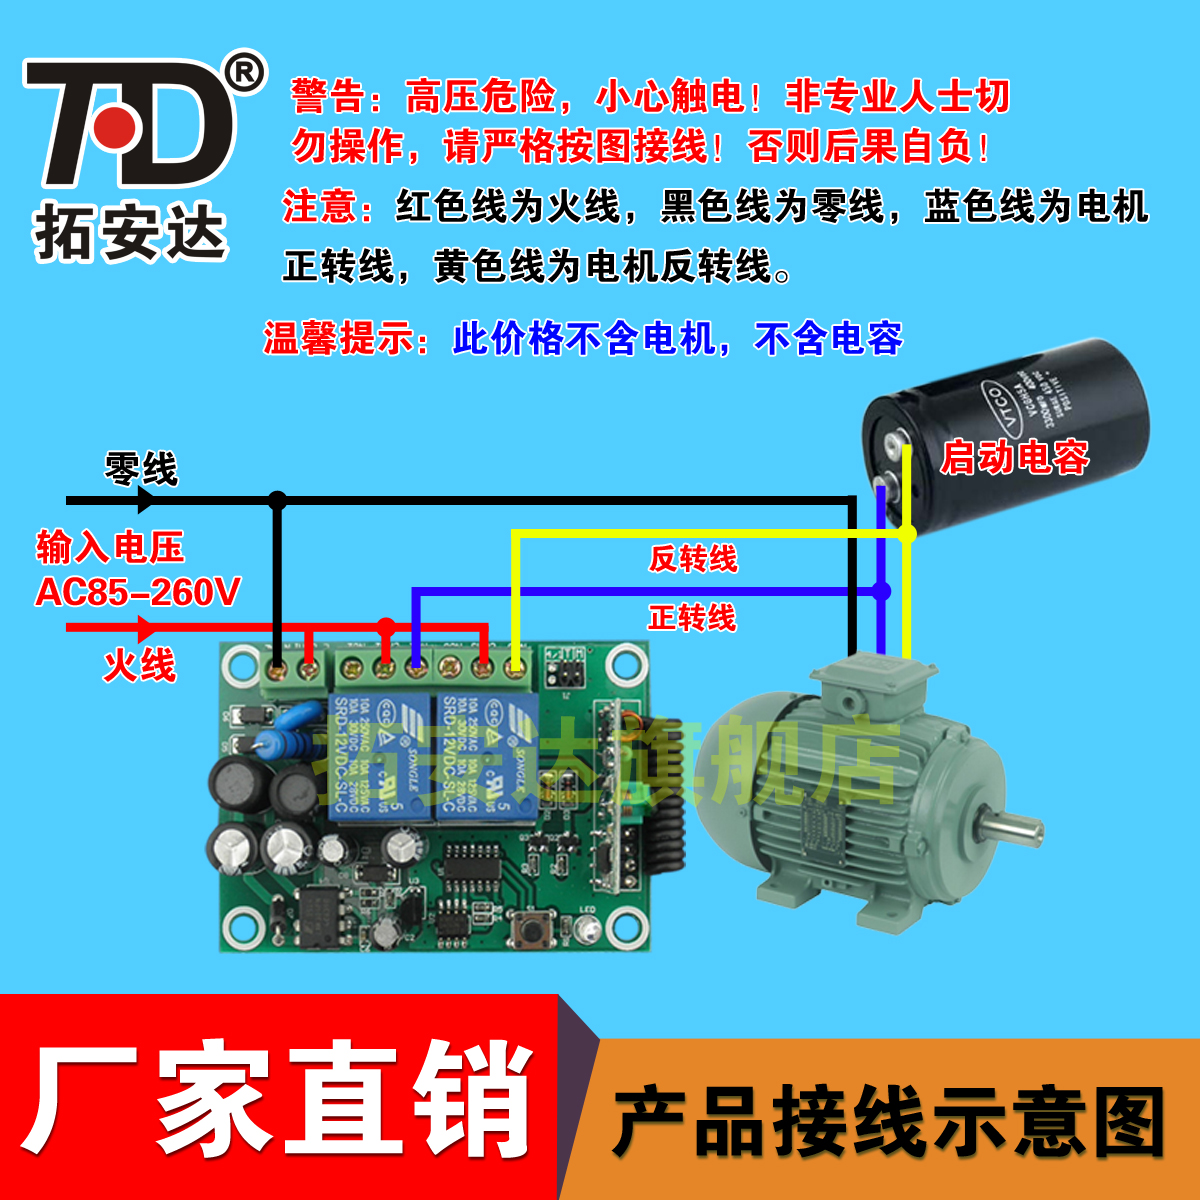 Wireless set remote control reverse motor speed switch 220 V motor gear remote controller small forward and reverse